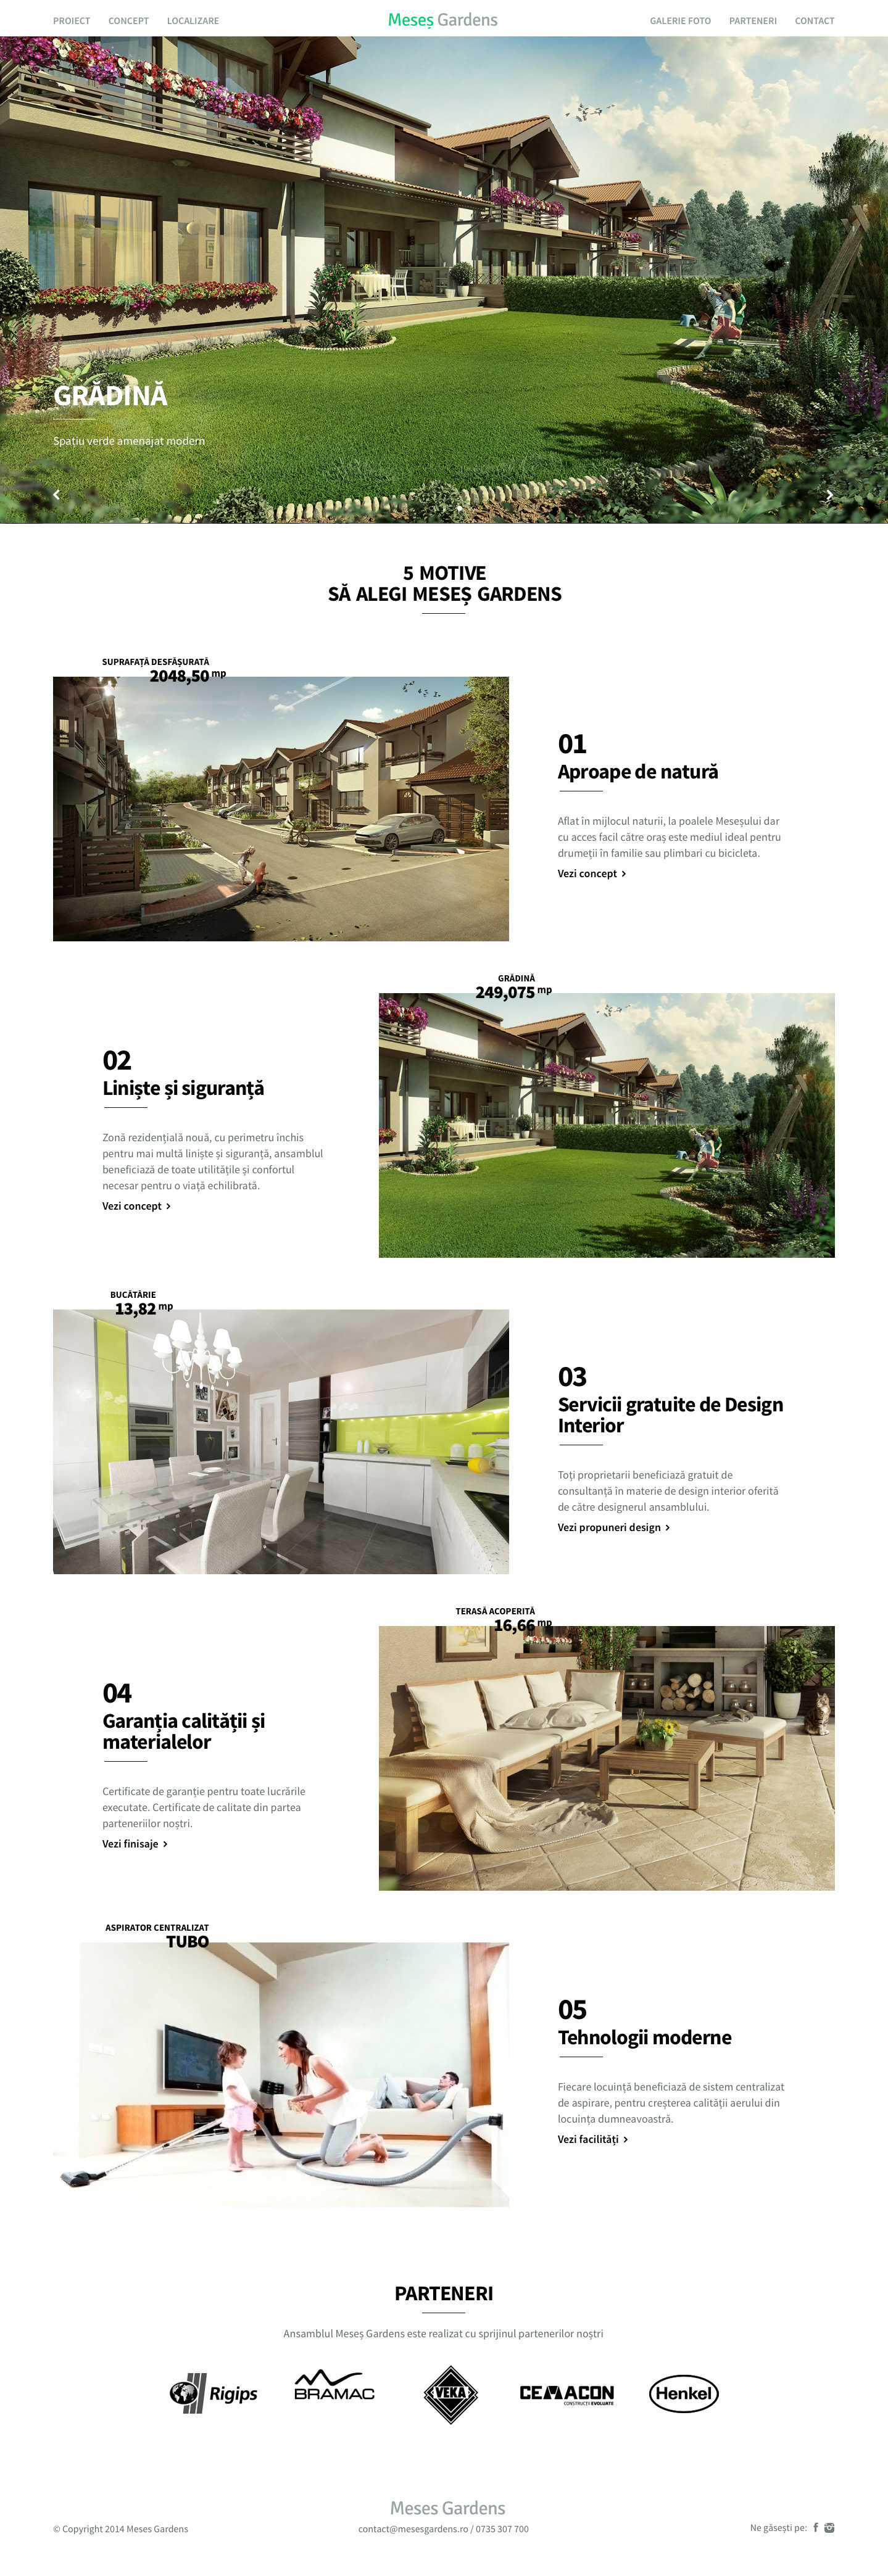 meses_gardens_homepage